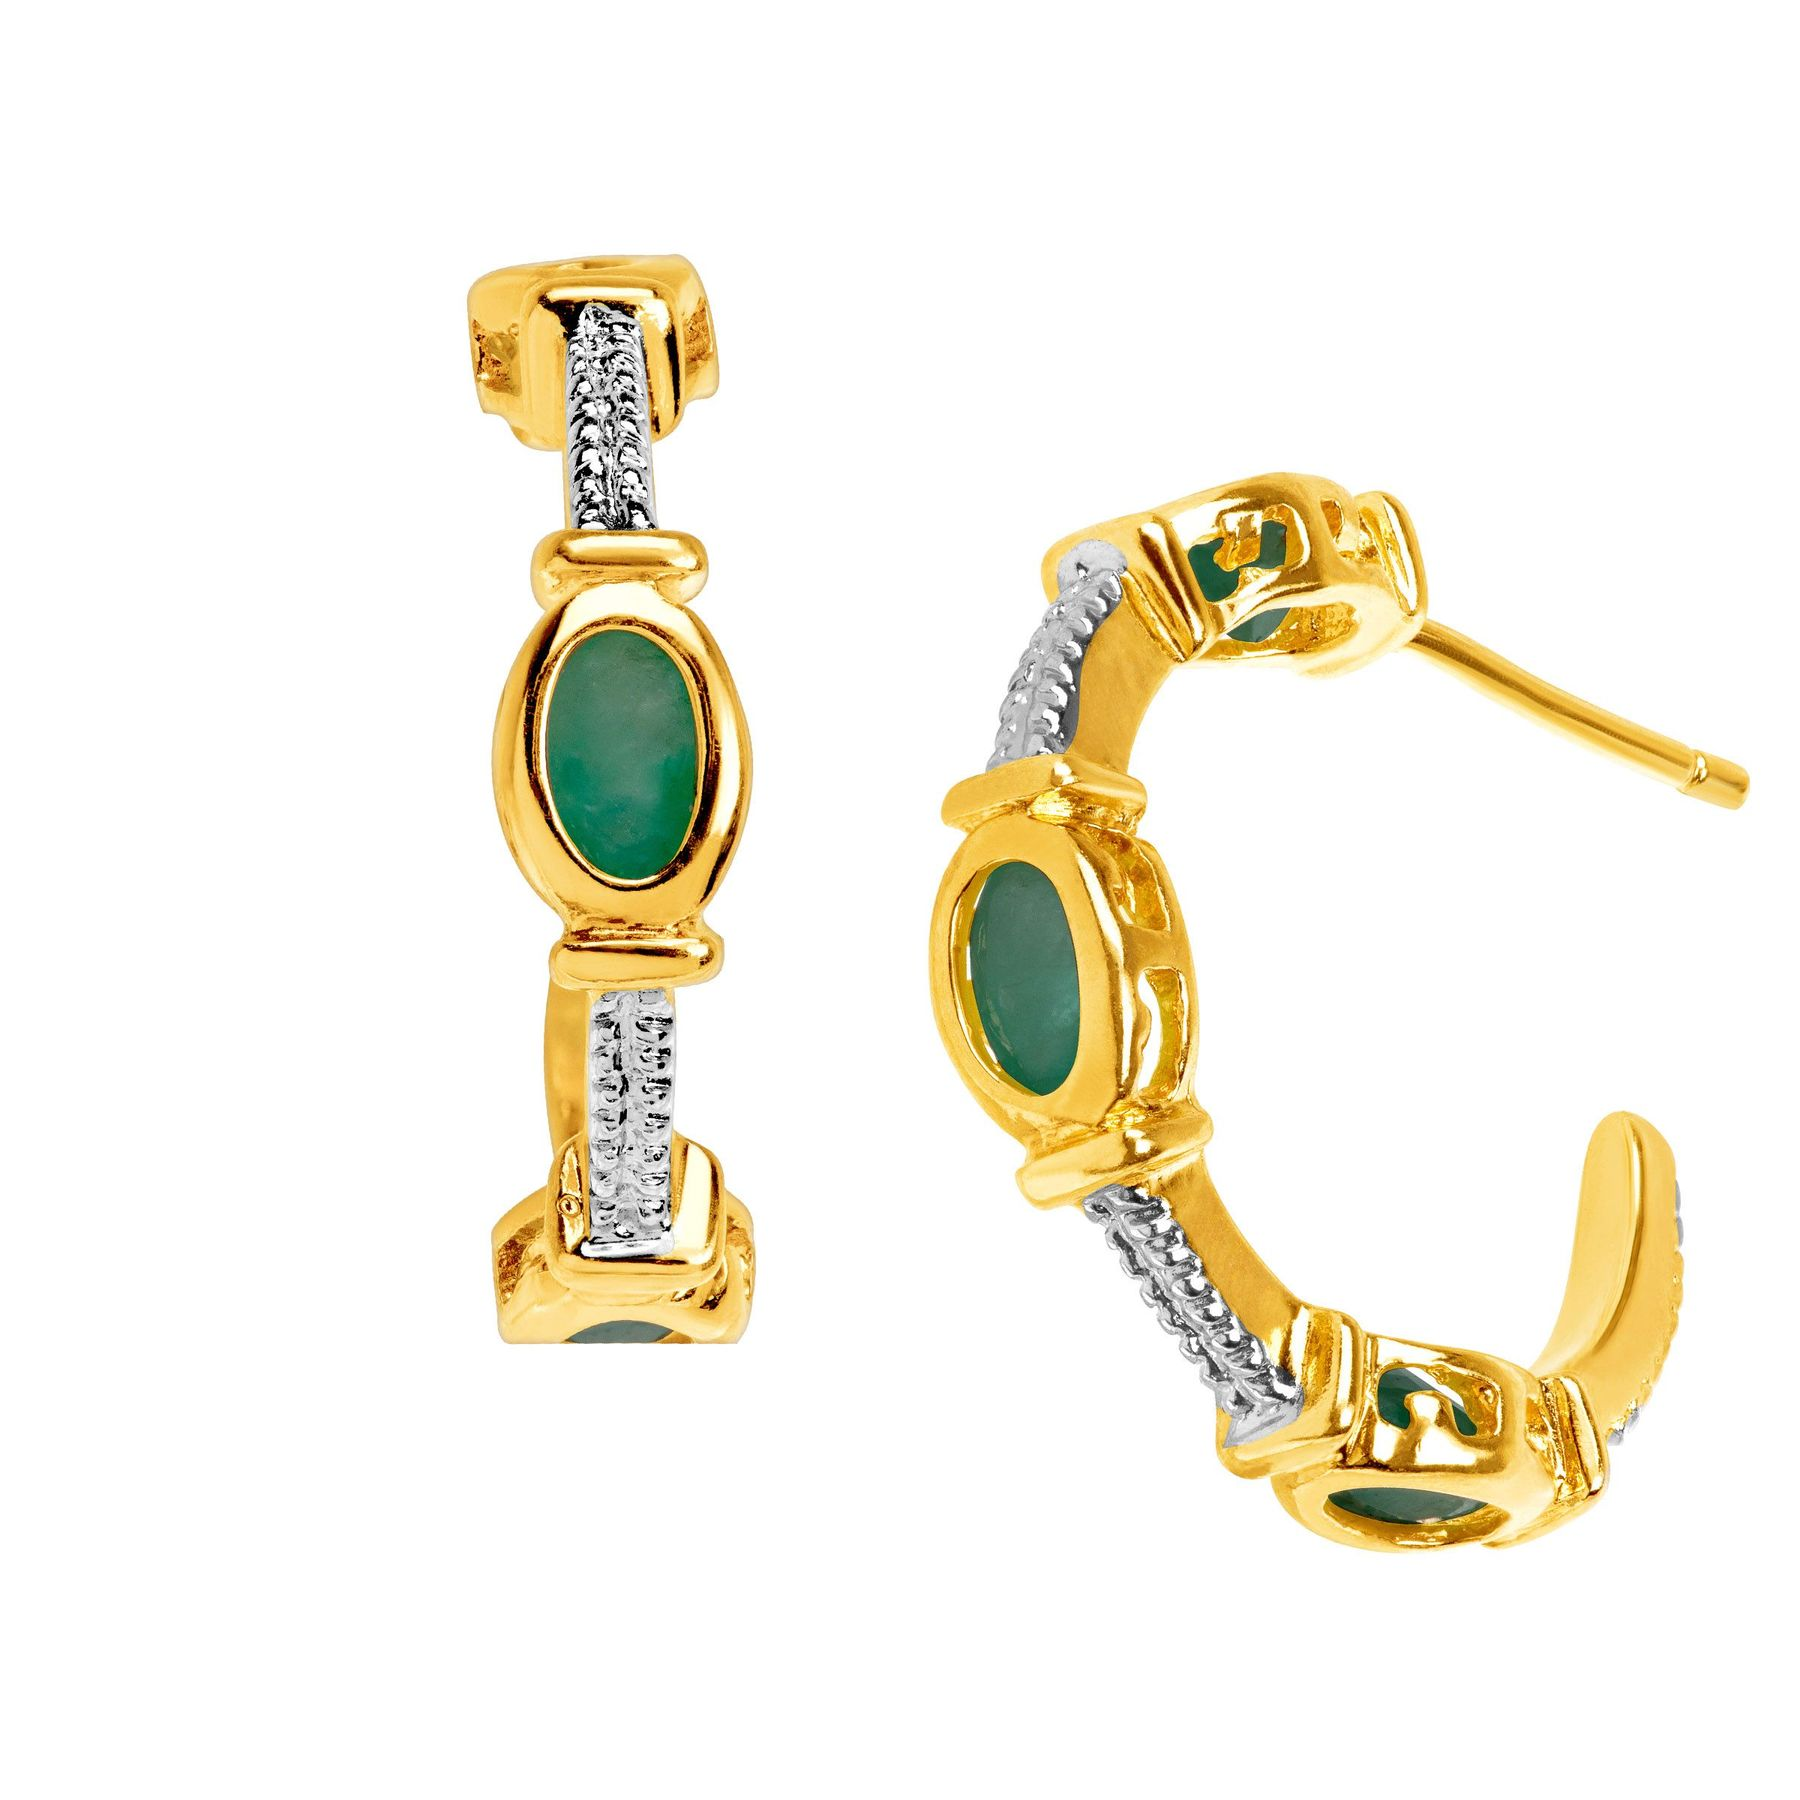 emerald ruby jewelry is itm antique gold snake ops earrings image loading natural stud yellow